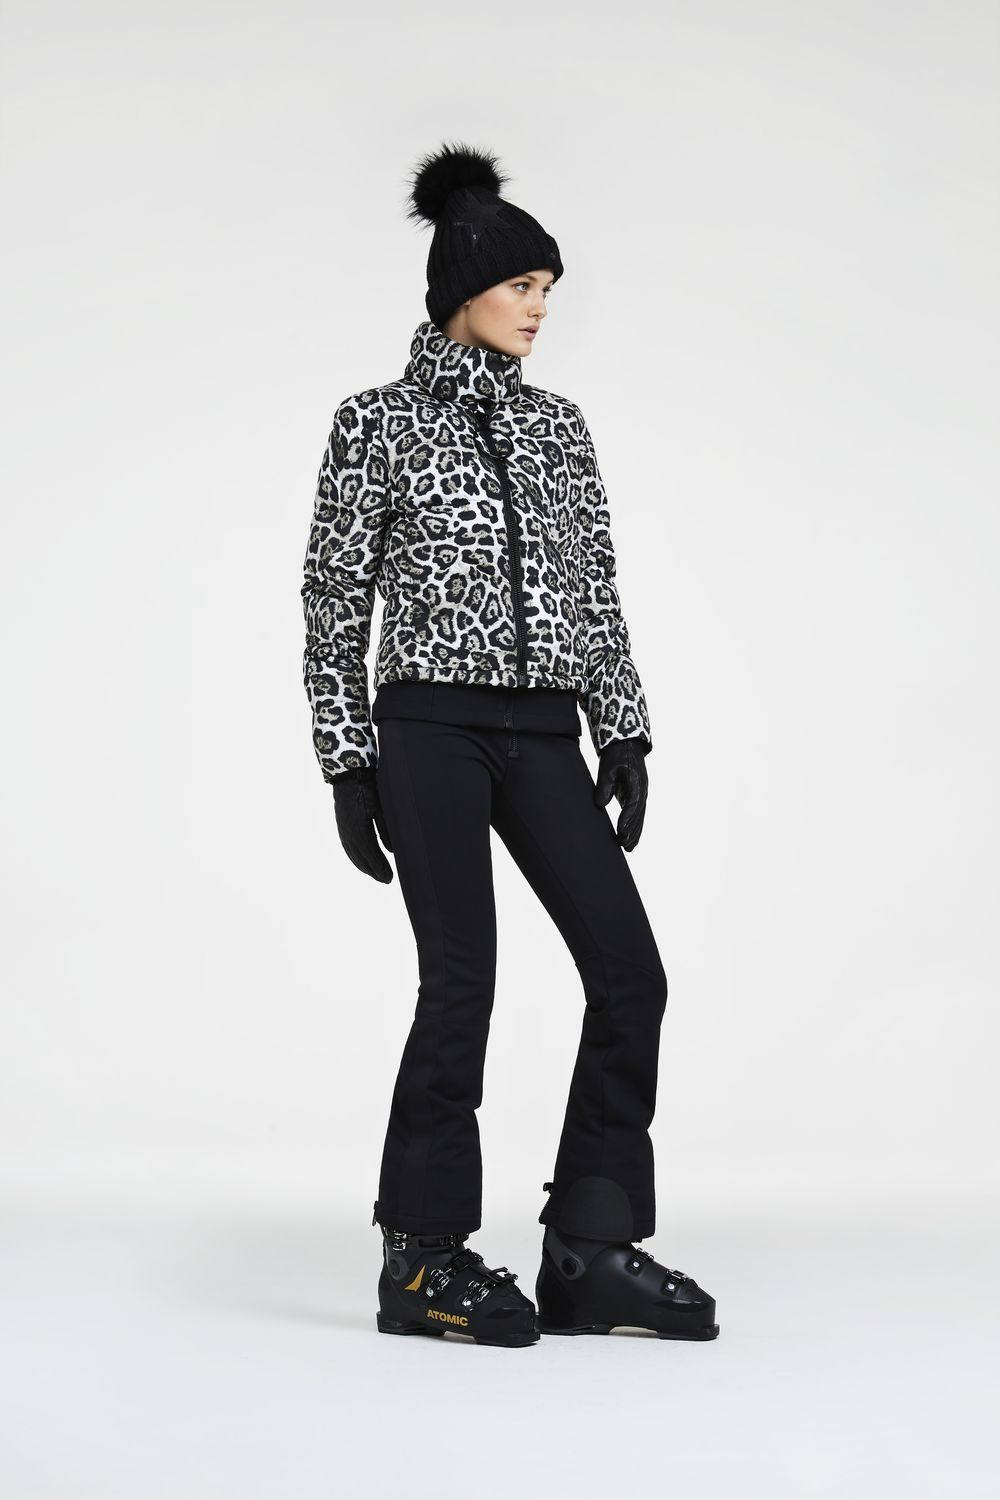 Women's Sunna Snow Leopard Print Ski Jacket Sale